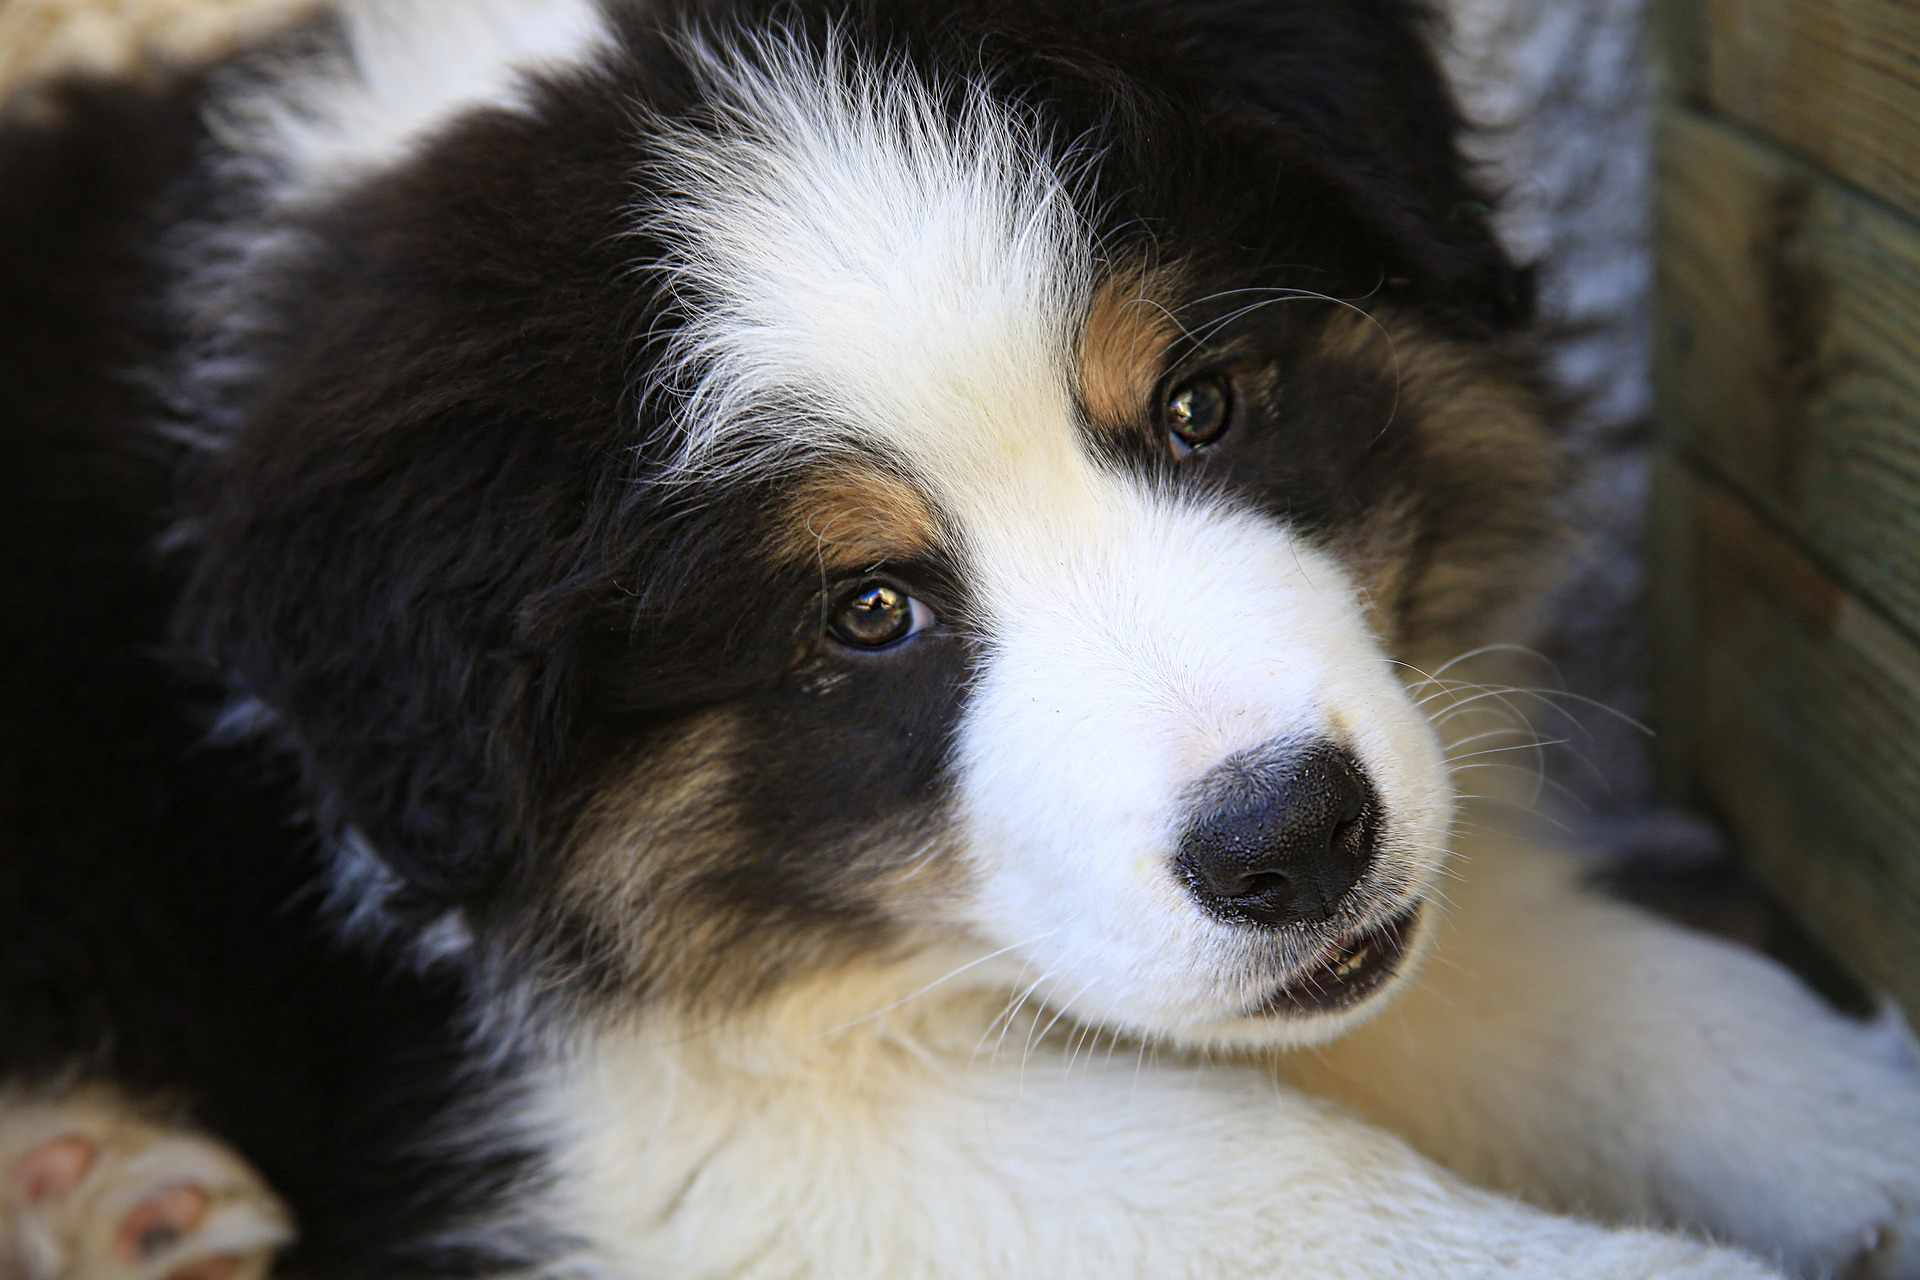 A Border Collie puppy looking into the camera.